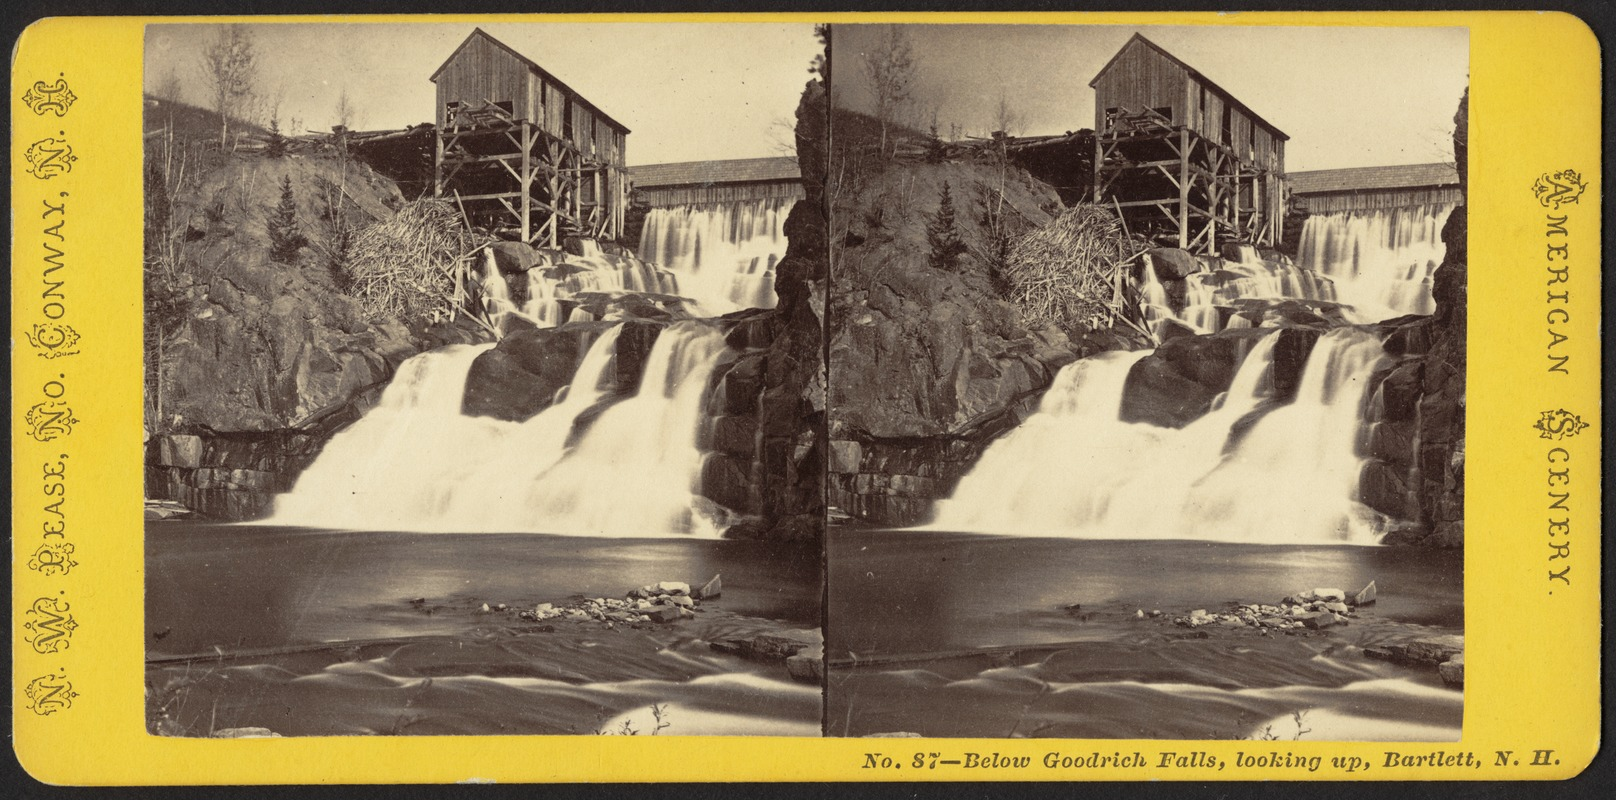 Below Goodrich Falls, looking up, Bartlett, N. H.